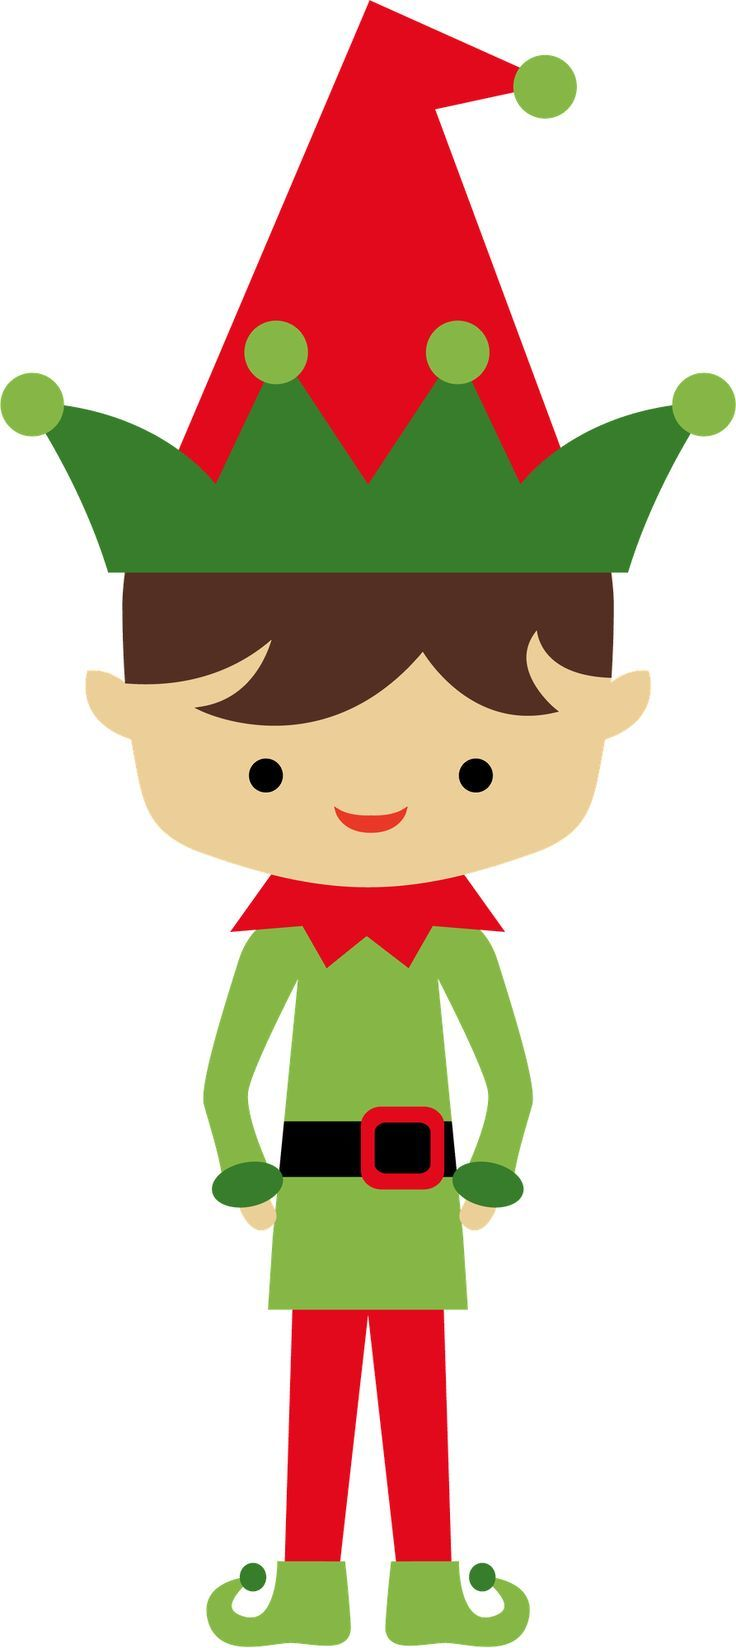 minus say hello ilustra christmas elf clip ward christmas party rh pinterest com christmas elves images clip art cute christmas elves clipart